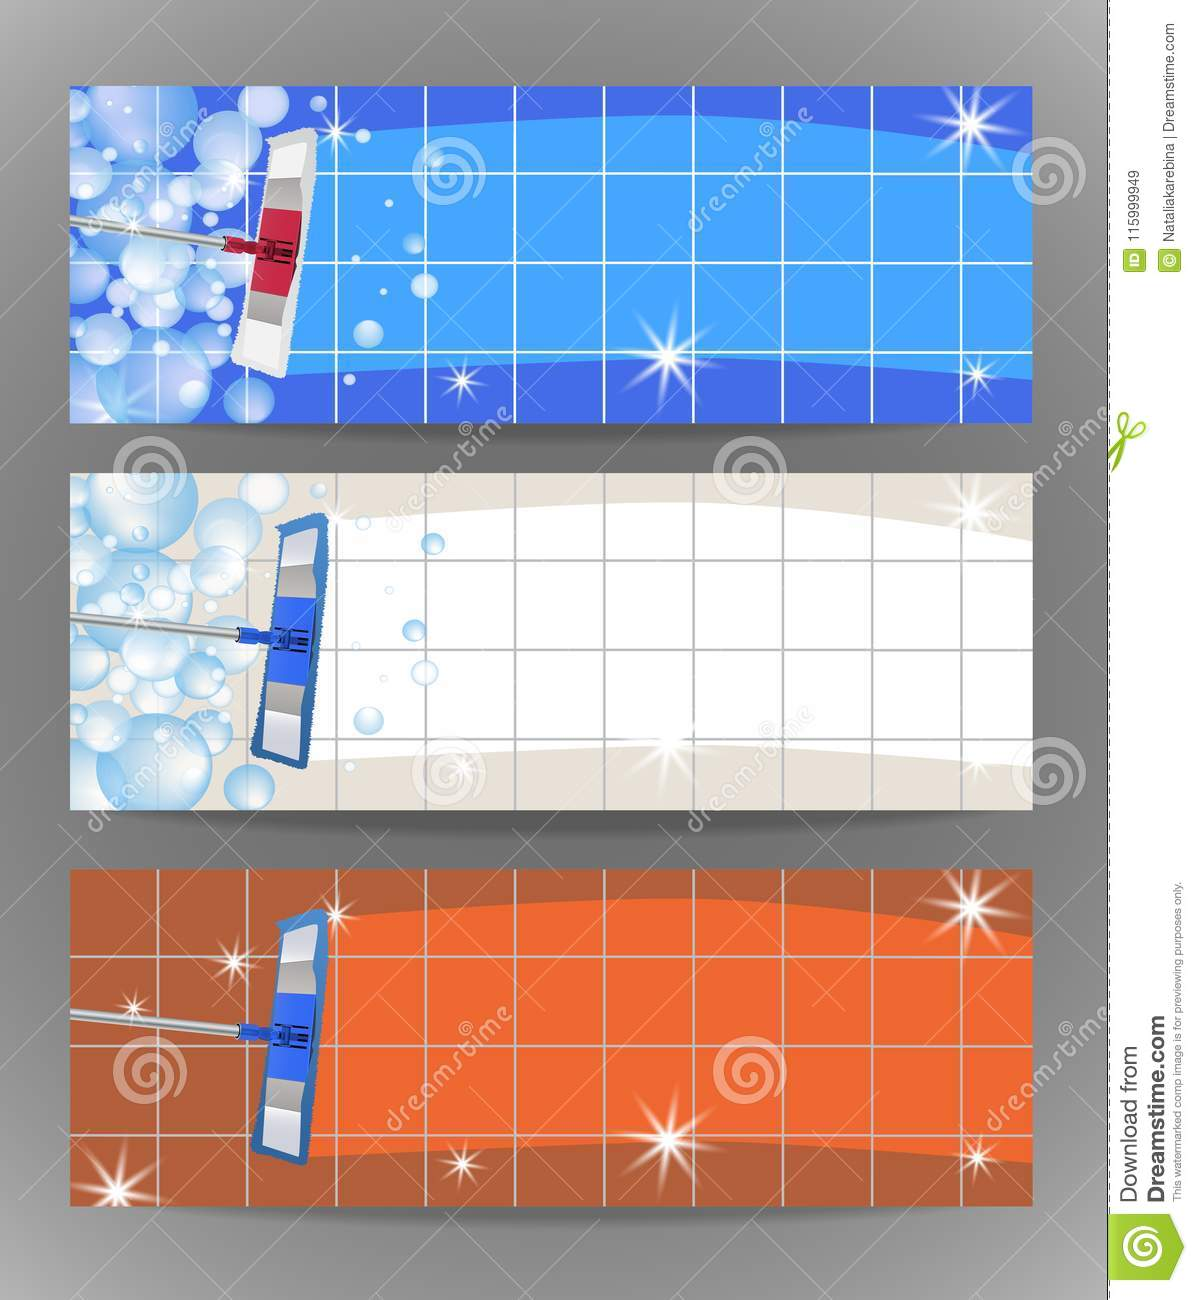 hight resolution of set banners mop cleaning clean tile floor shiny vector